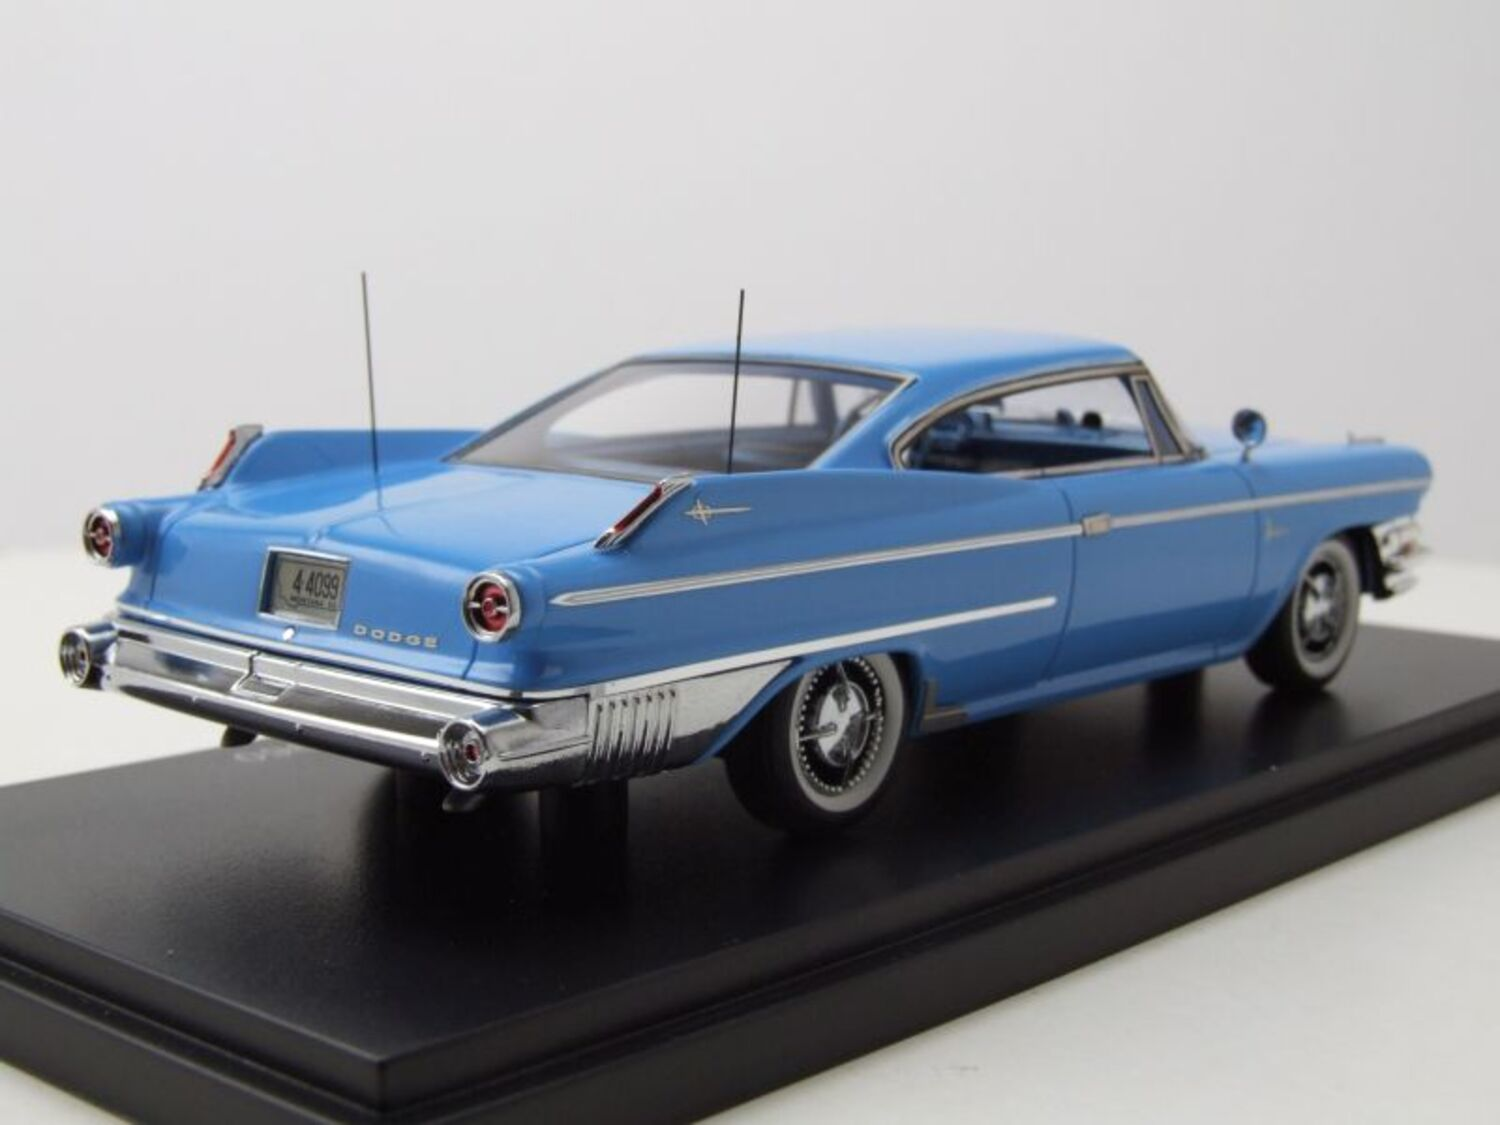 Dodge Polara Coupe 1960 blau Modellauto 1:43 Neo Scale Models